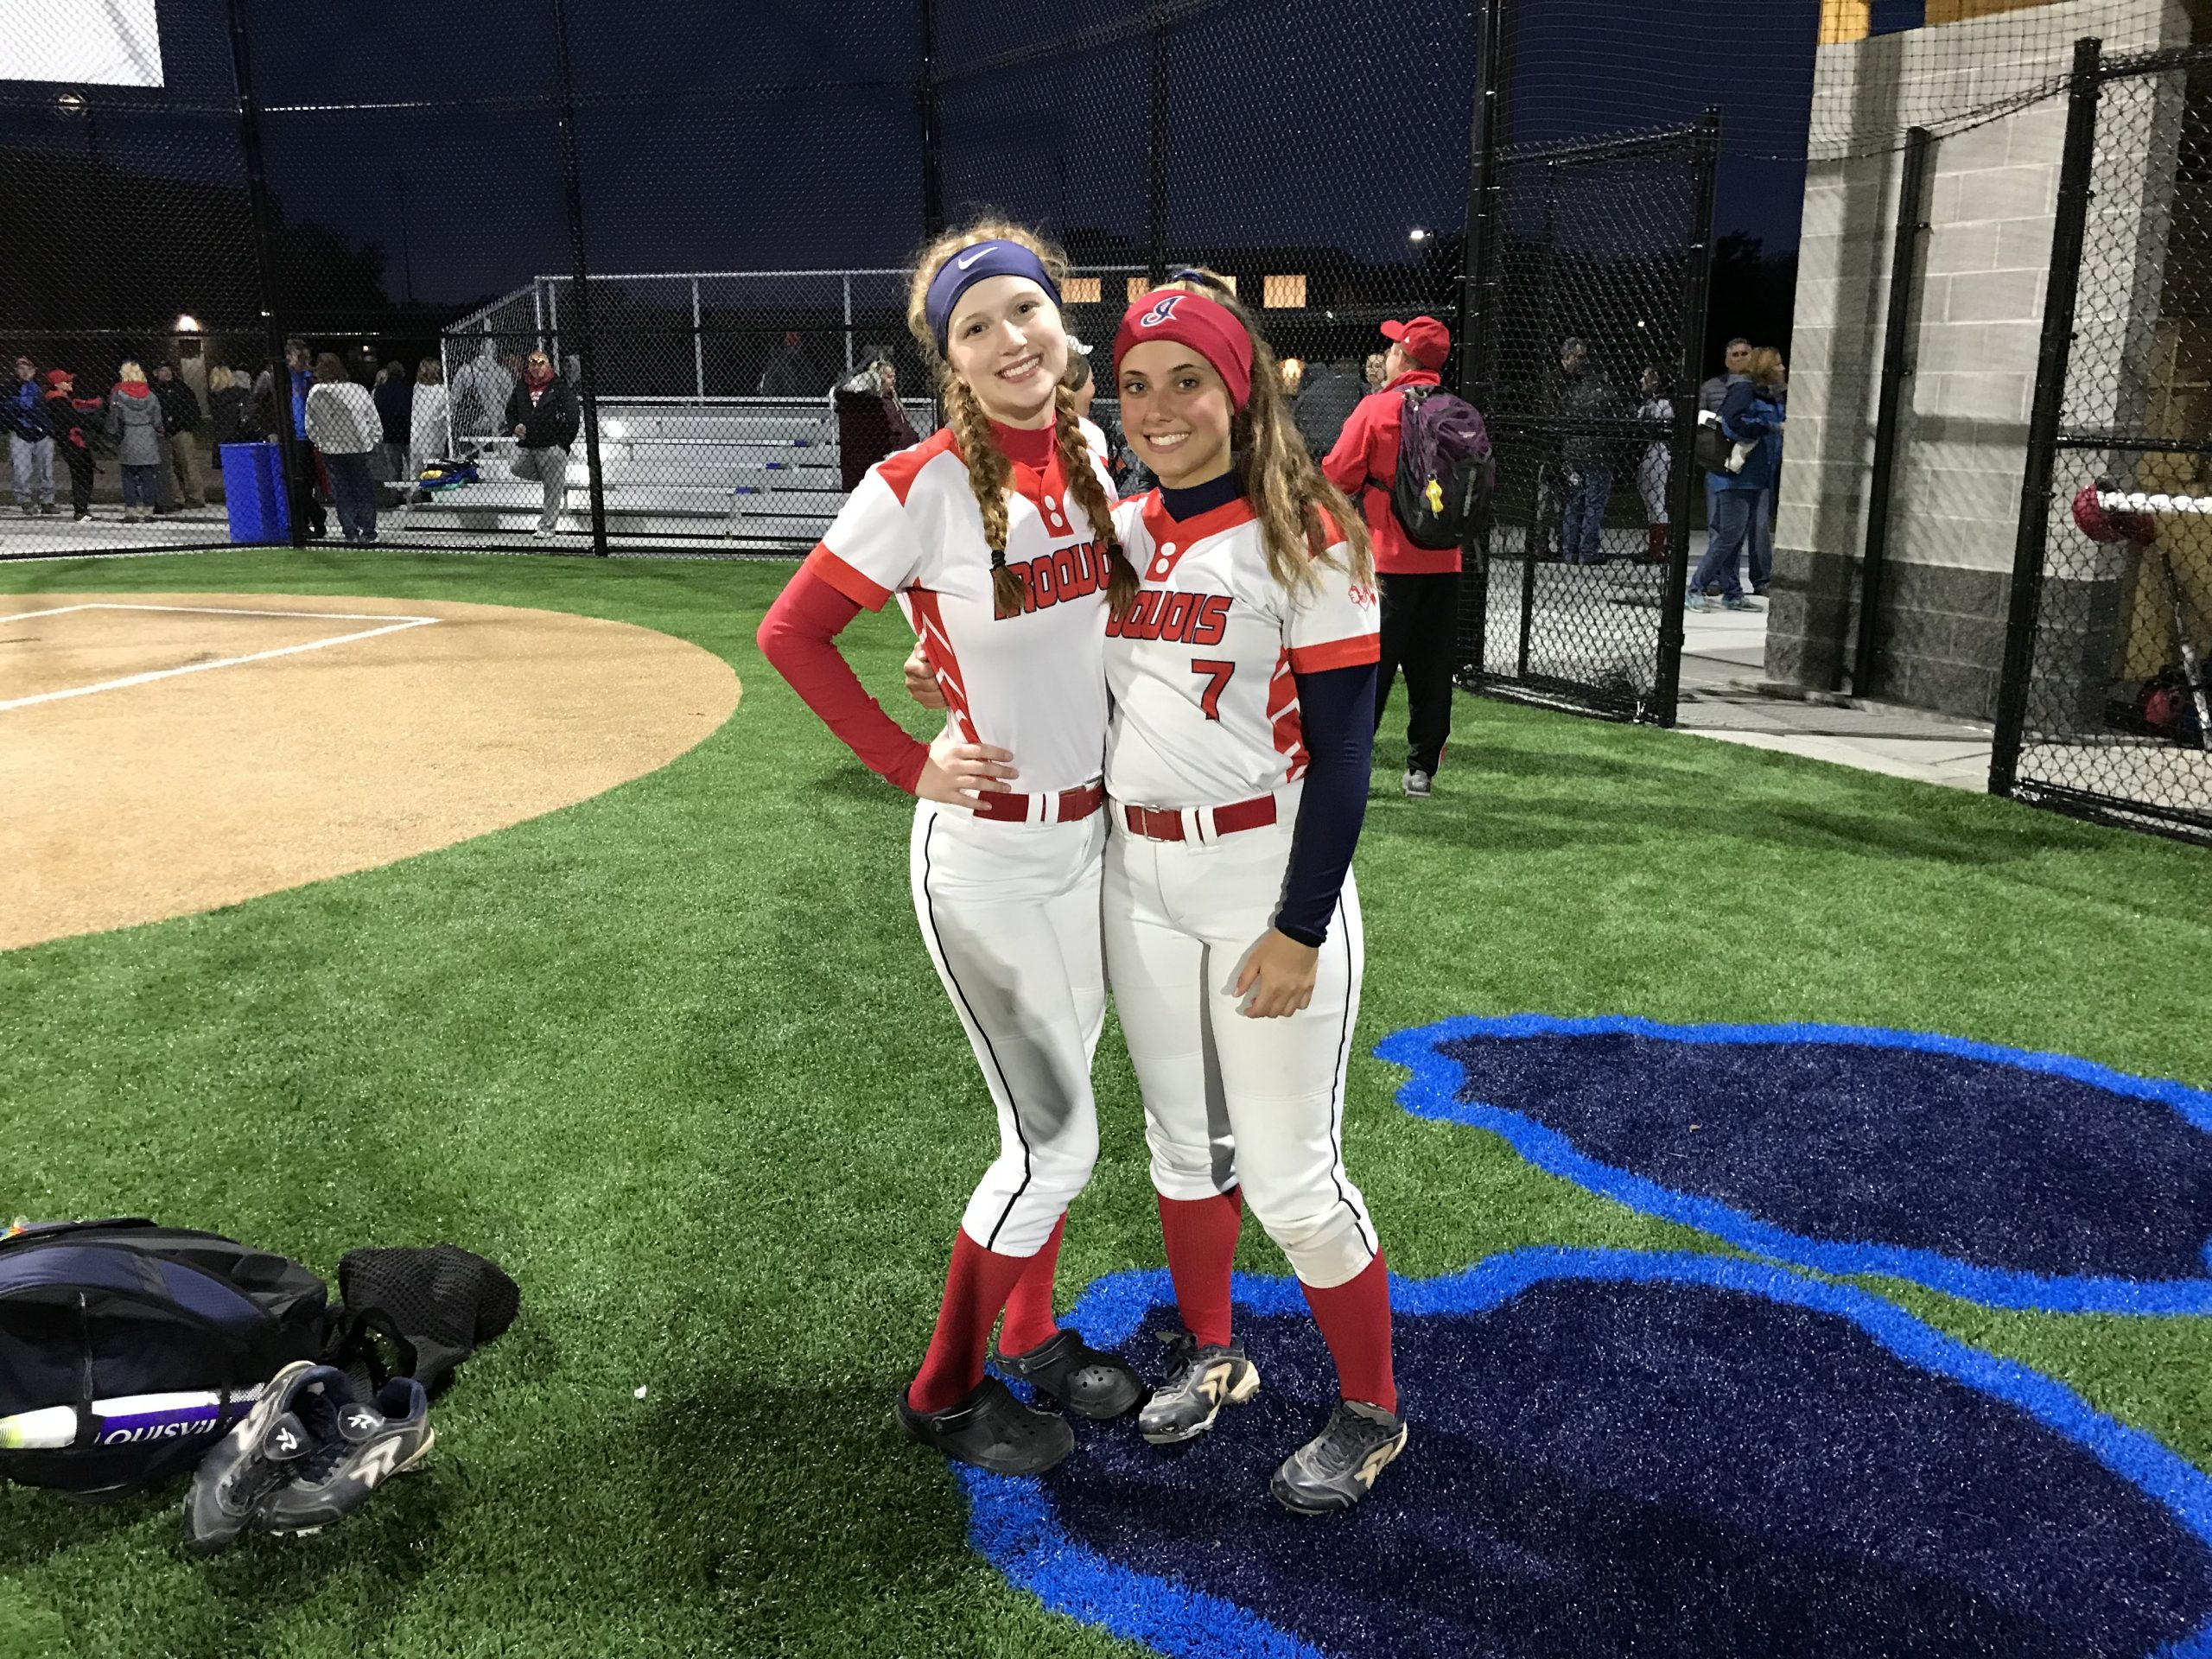 Co-Aces Simon, Hoeflich Lead Iroquois Softball Back to Sectional Championship Game